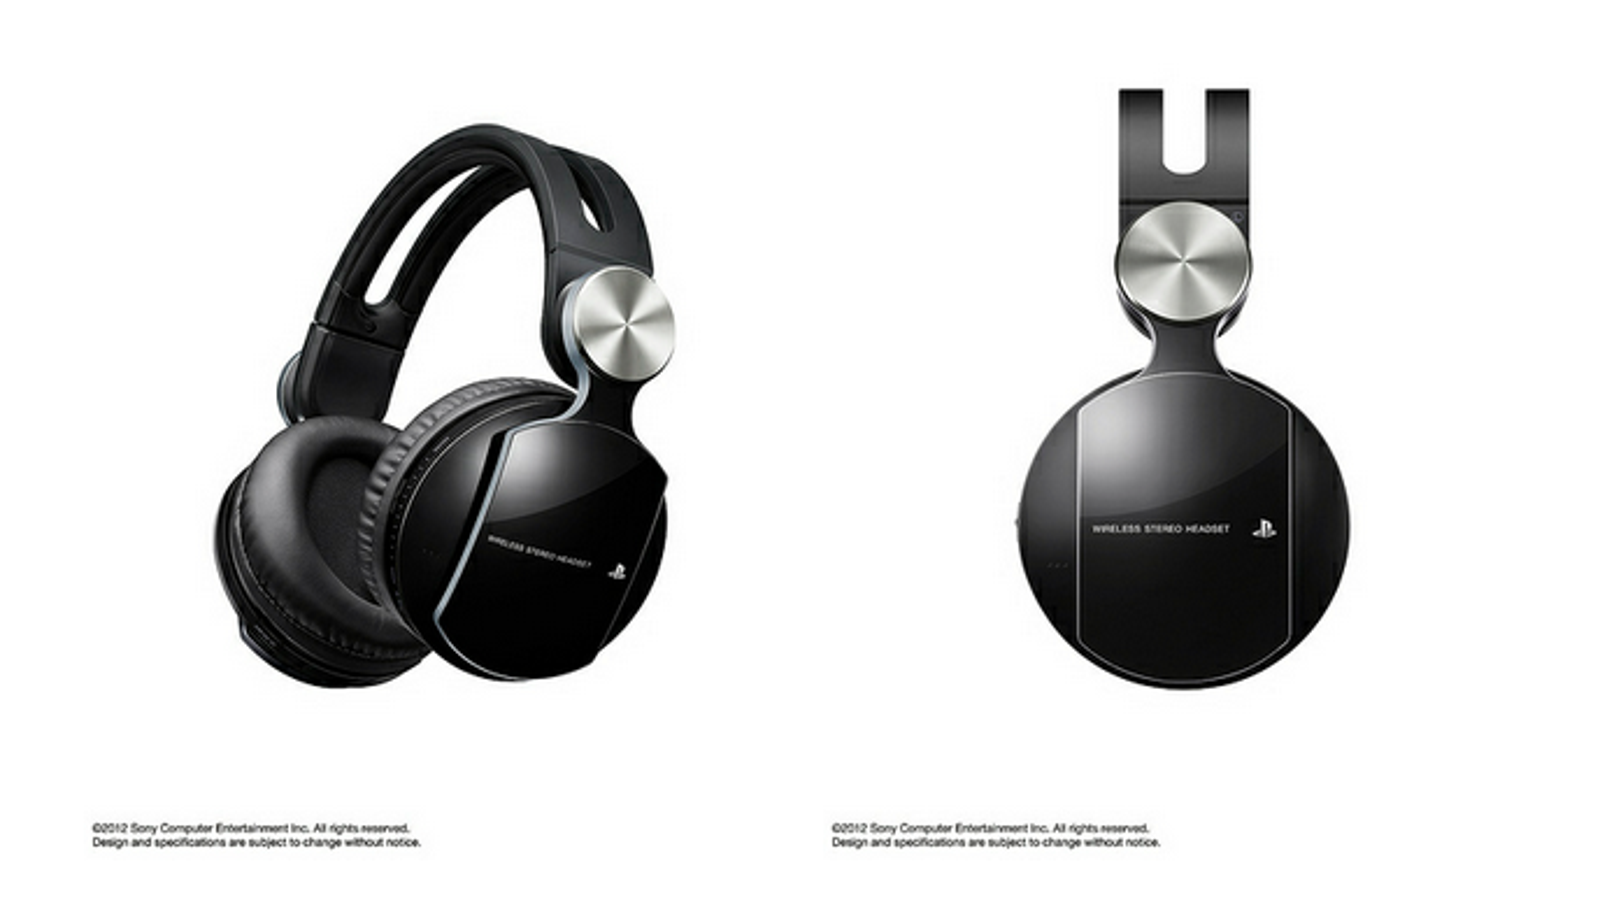 earbuds tips all sizes - Sony PS3's New Gaming Headset Brings Extra Bass